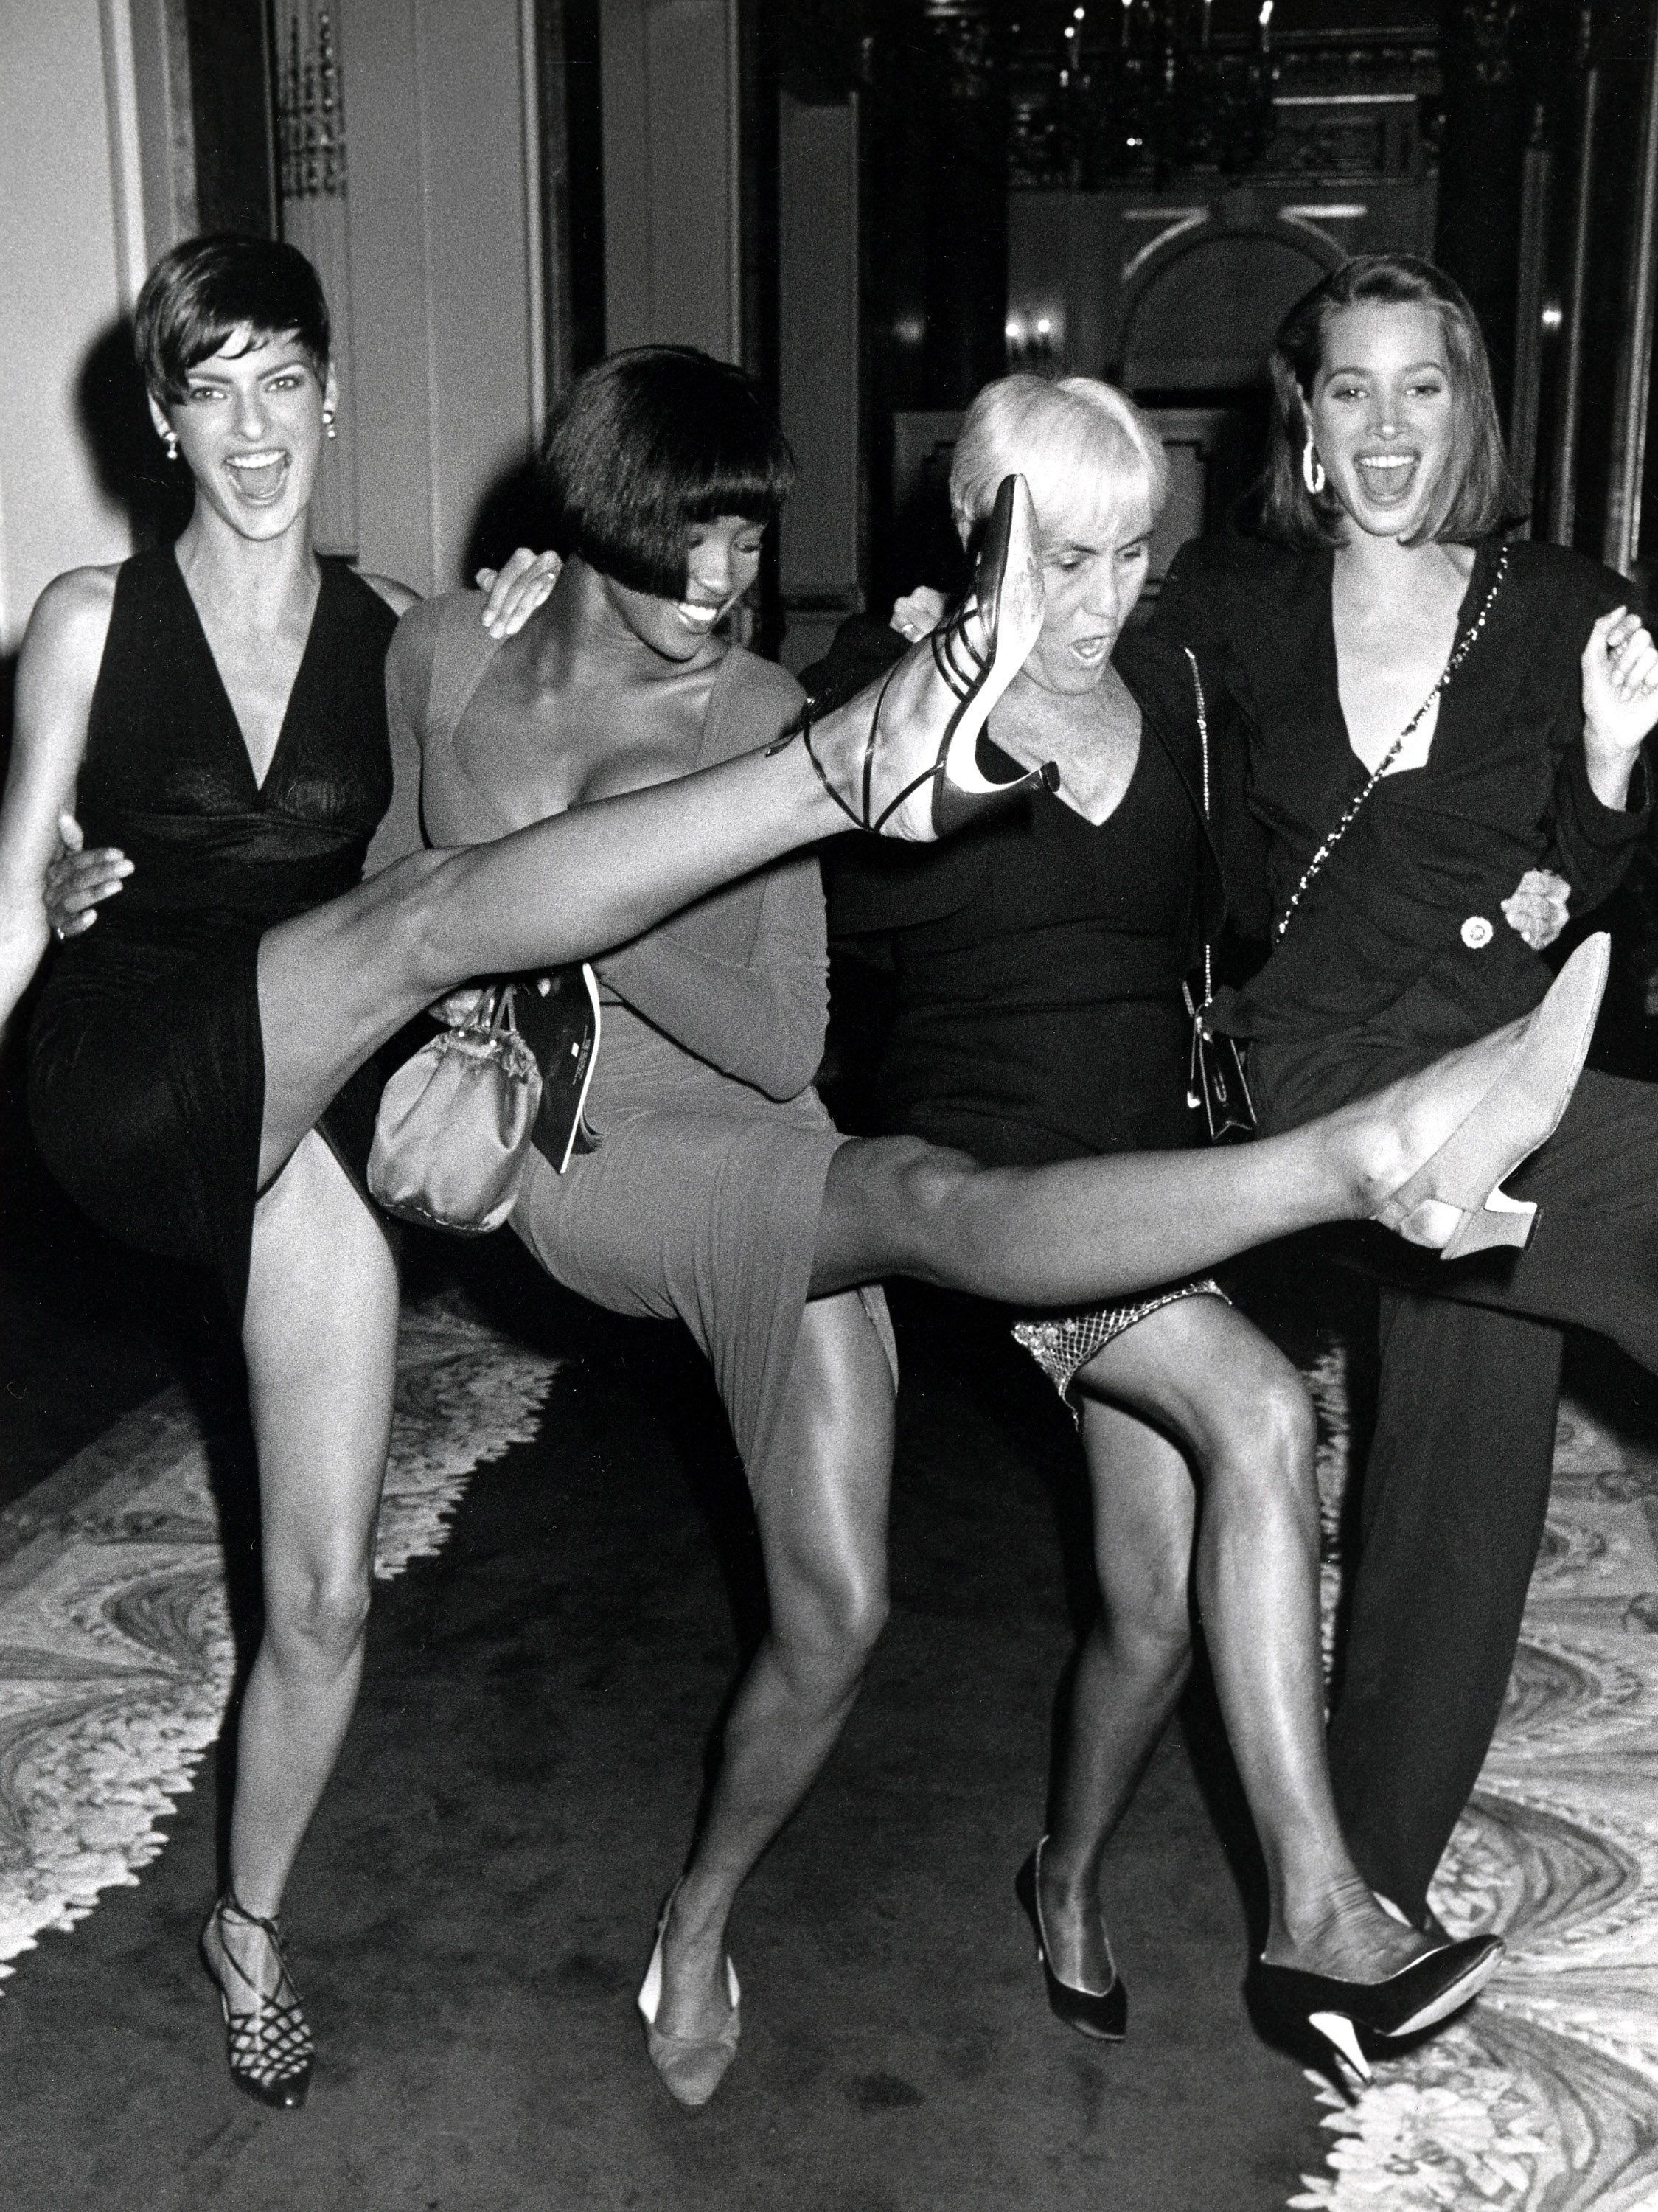 Linda Evangelista, Naomi Campbell, Polly Mellon, and Christy Turlington (Photo by Ron Galella/WireImage)